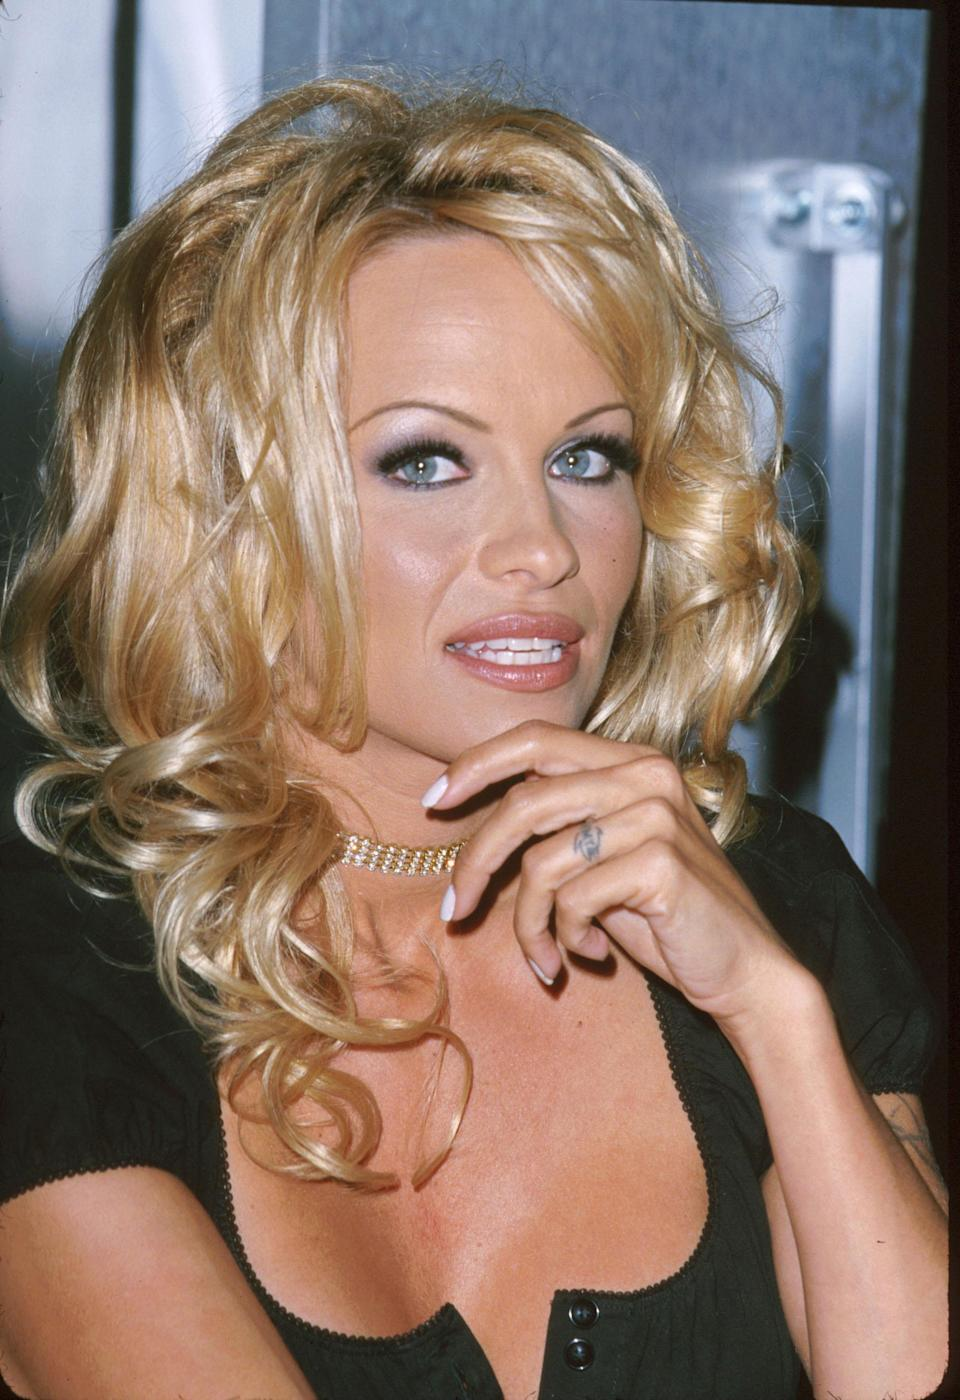 """Pamela Anderson shows off her """"Tommy"""" tattoo of her ex-husband's first name. (Photo: Getty Images)"""